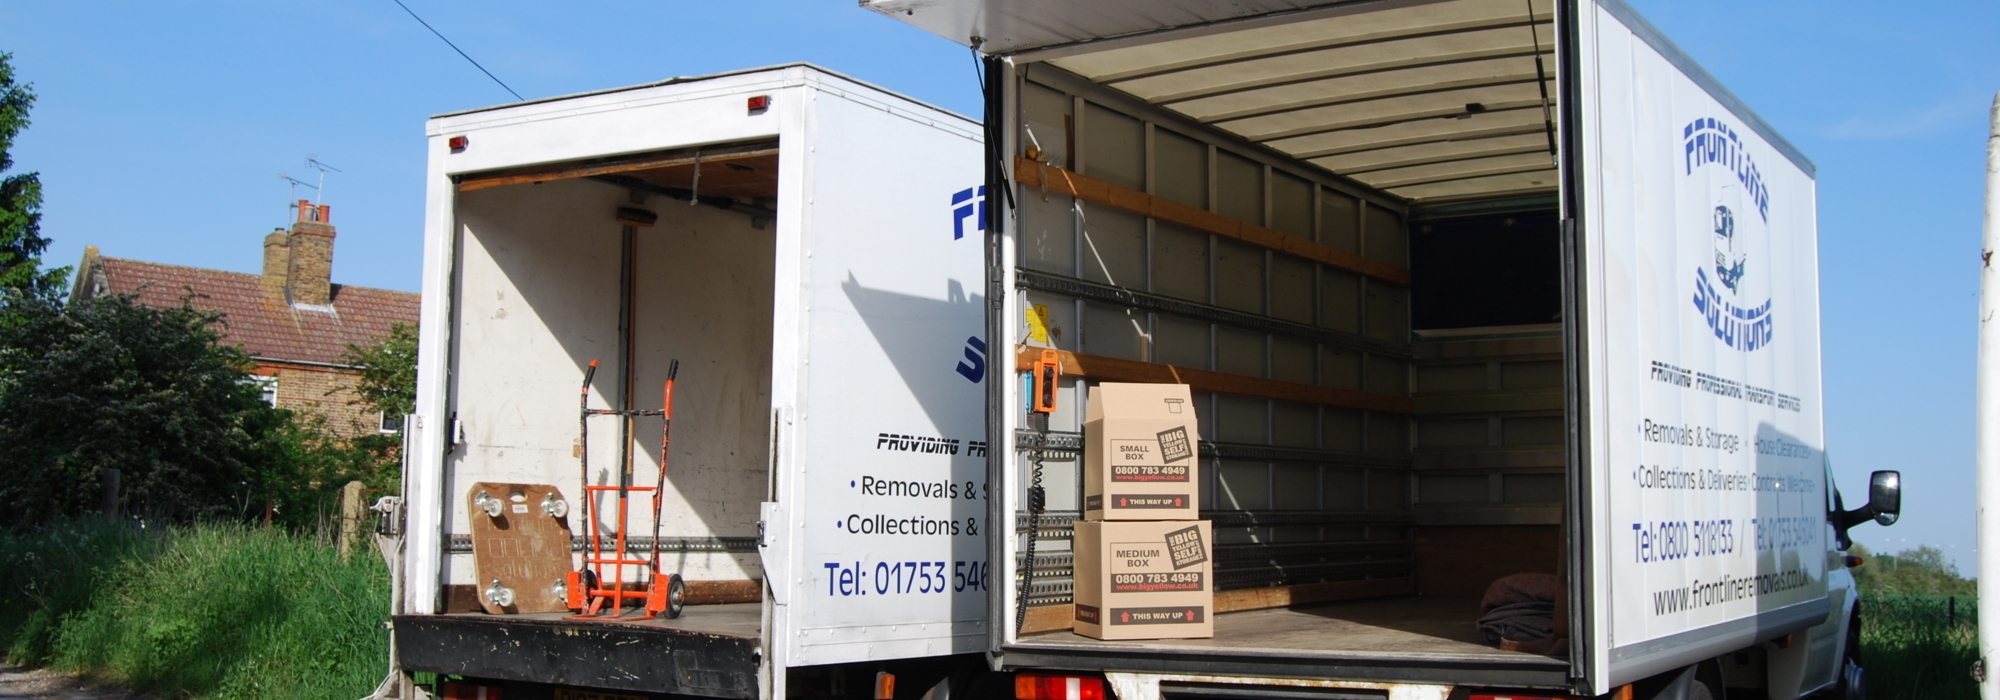 House Removals Windsor, Removals Companies Windsor, House Removals Maidenhead